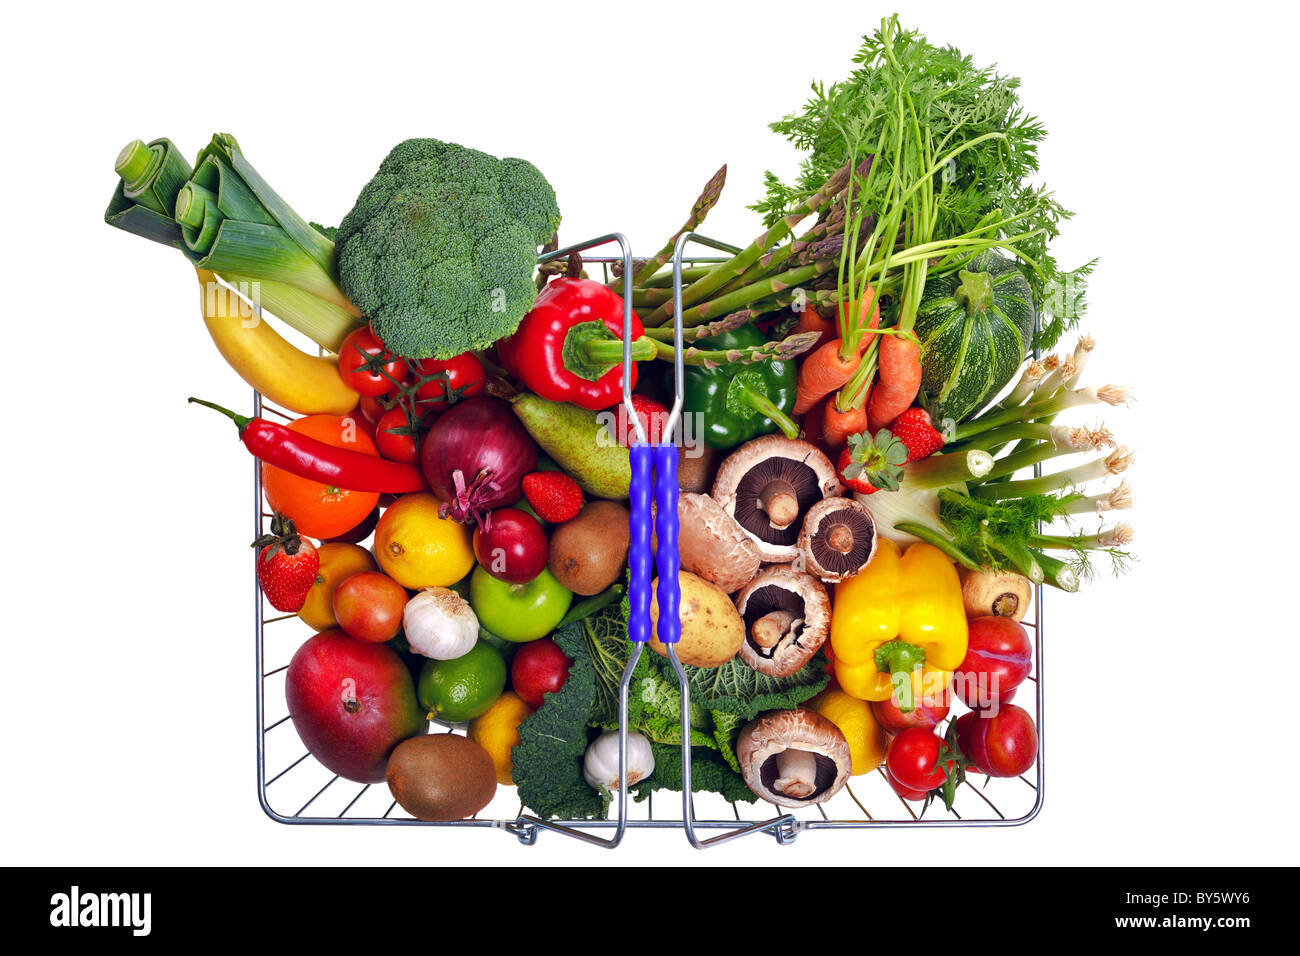 Photo of a wire shopping basket full of fresh fruit and vegetables, shot from above and isolated on a white background. - Stock Image